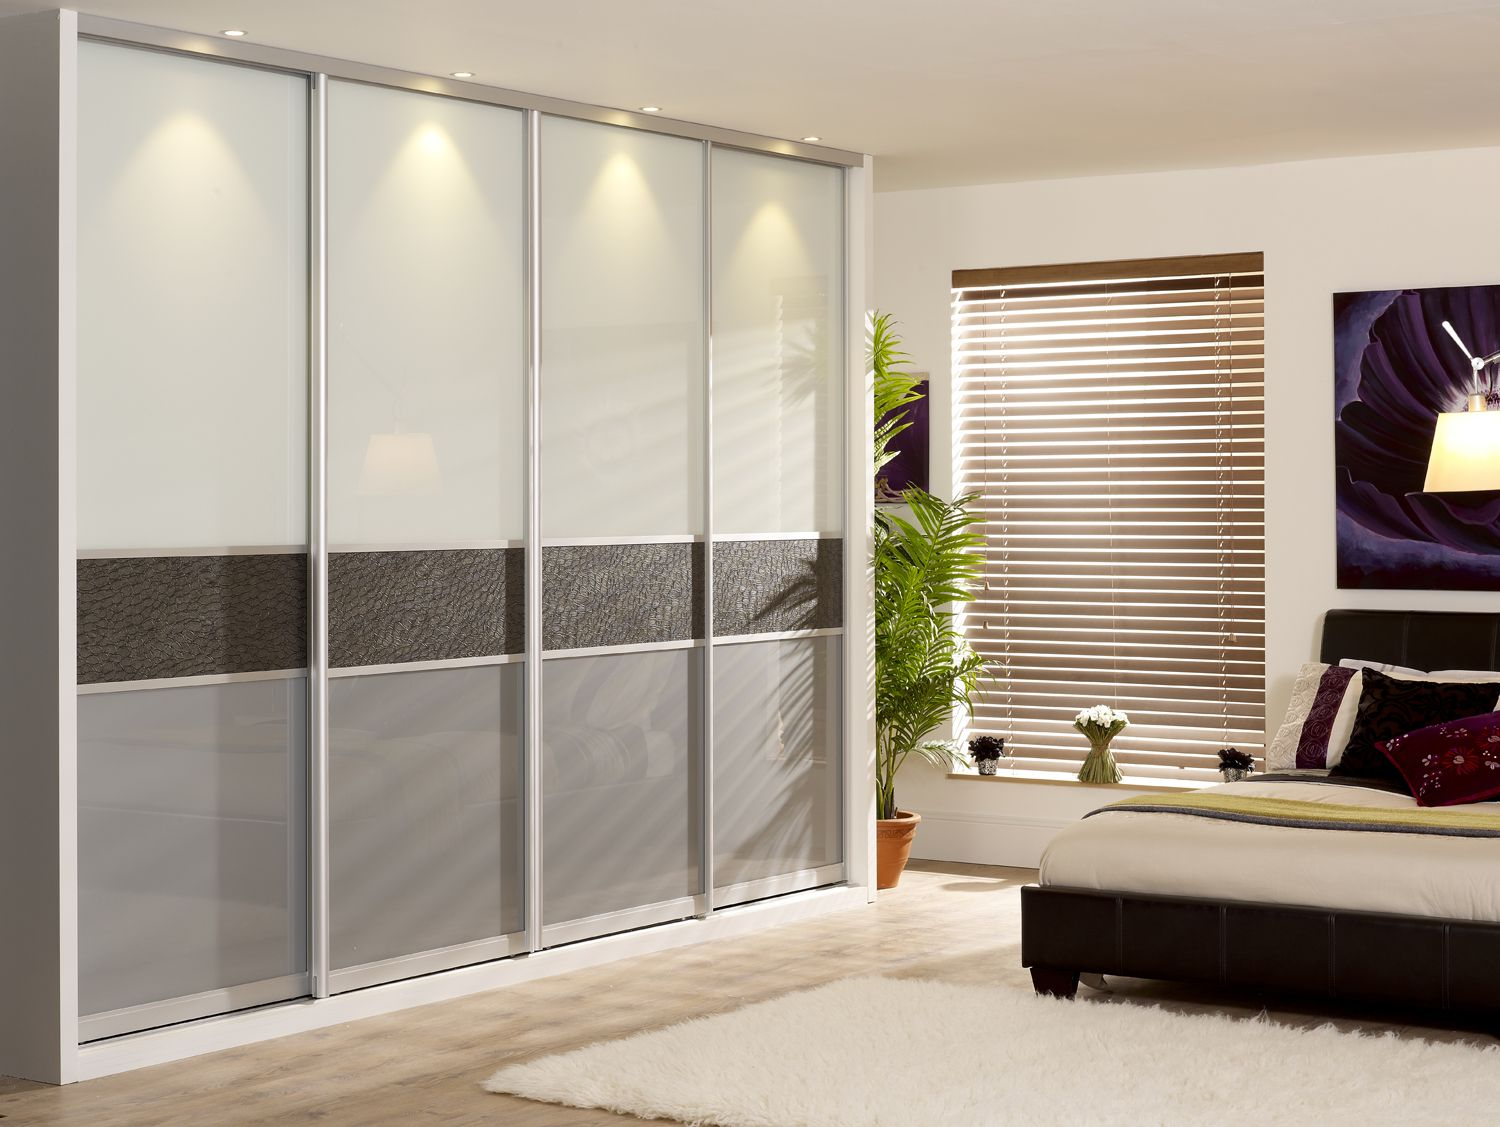 Quality sliding wardrobe doors made in the UK by the leading sliding  wardrobe manufacturer. Get fantastic bespoke, made to measure wardrobes at  a great ...